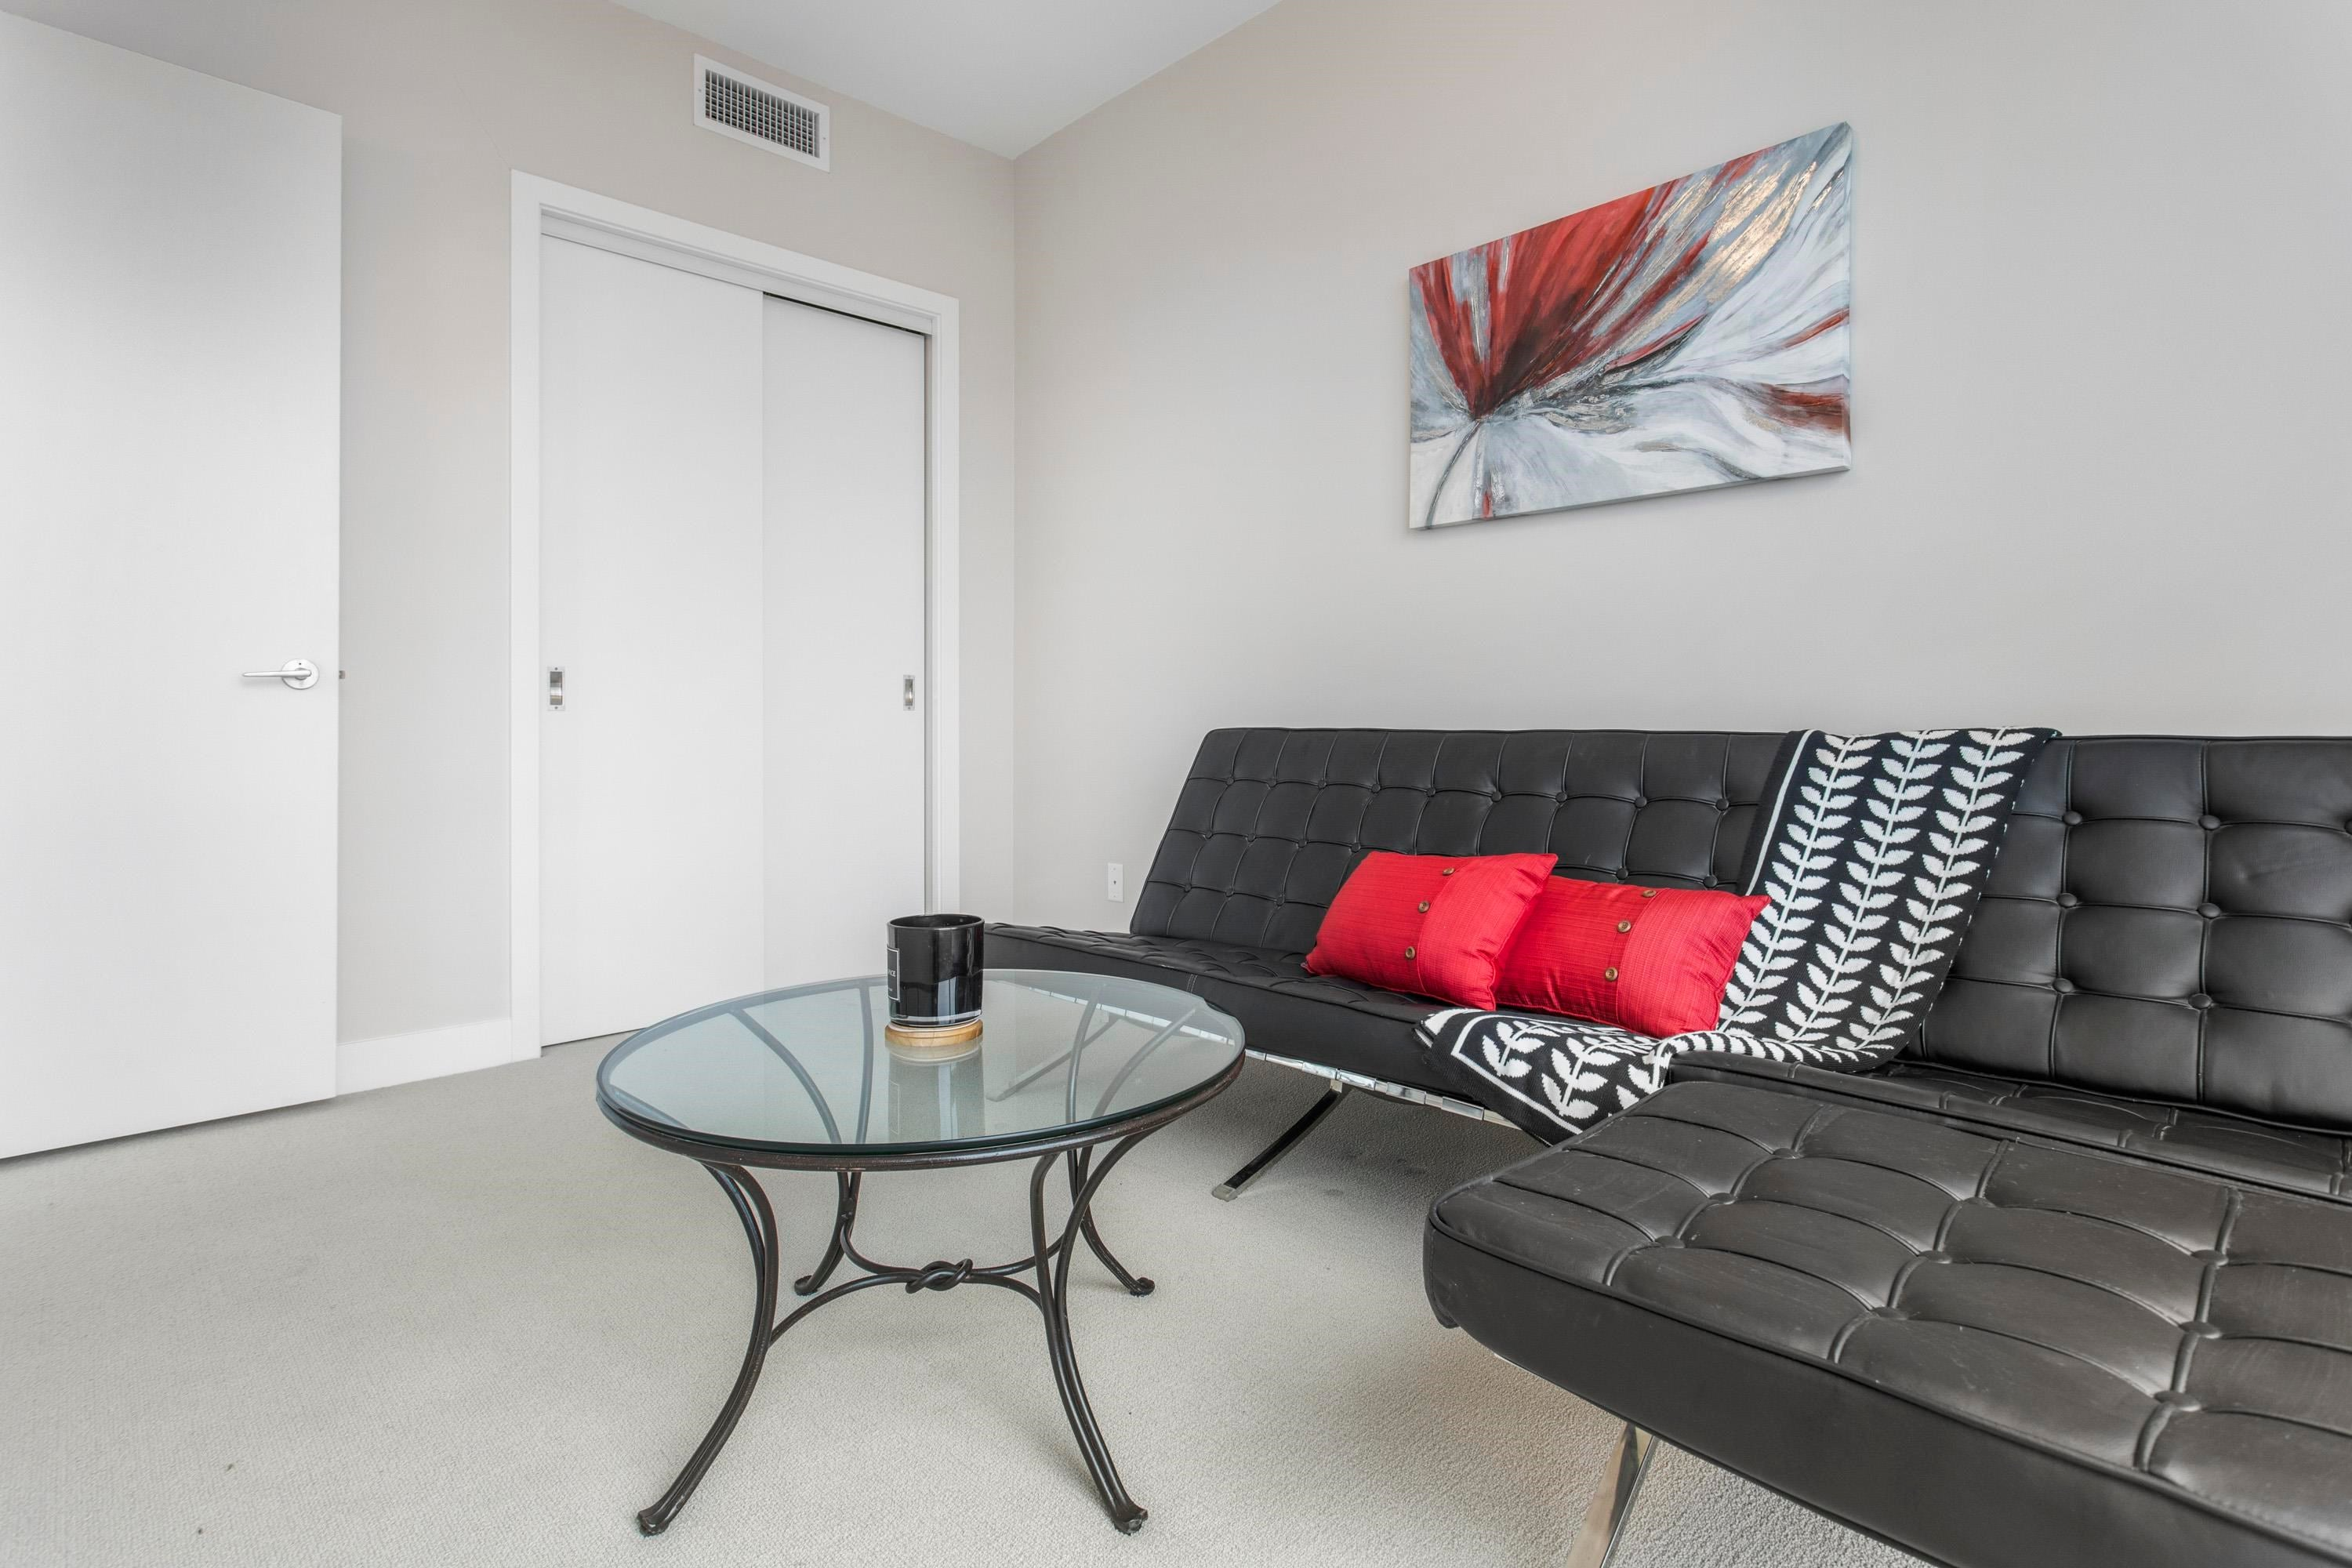 4002 2008 ROSSER AVENUE - Brentwood Park Apartment/Condo for sale, 2 Bedrooms (R2625548) - #26